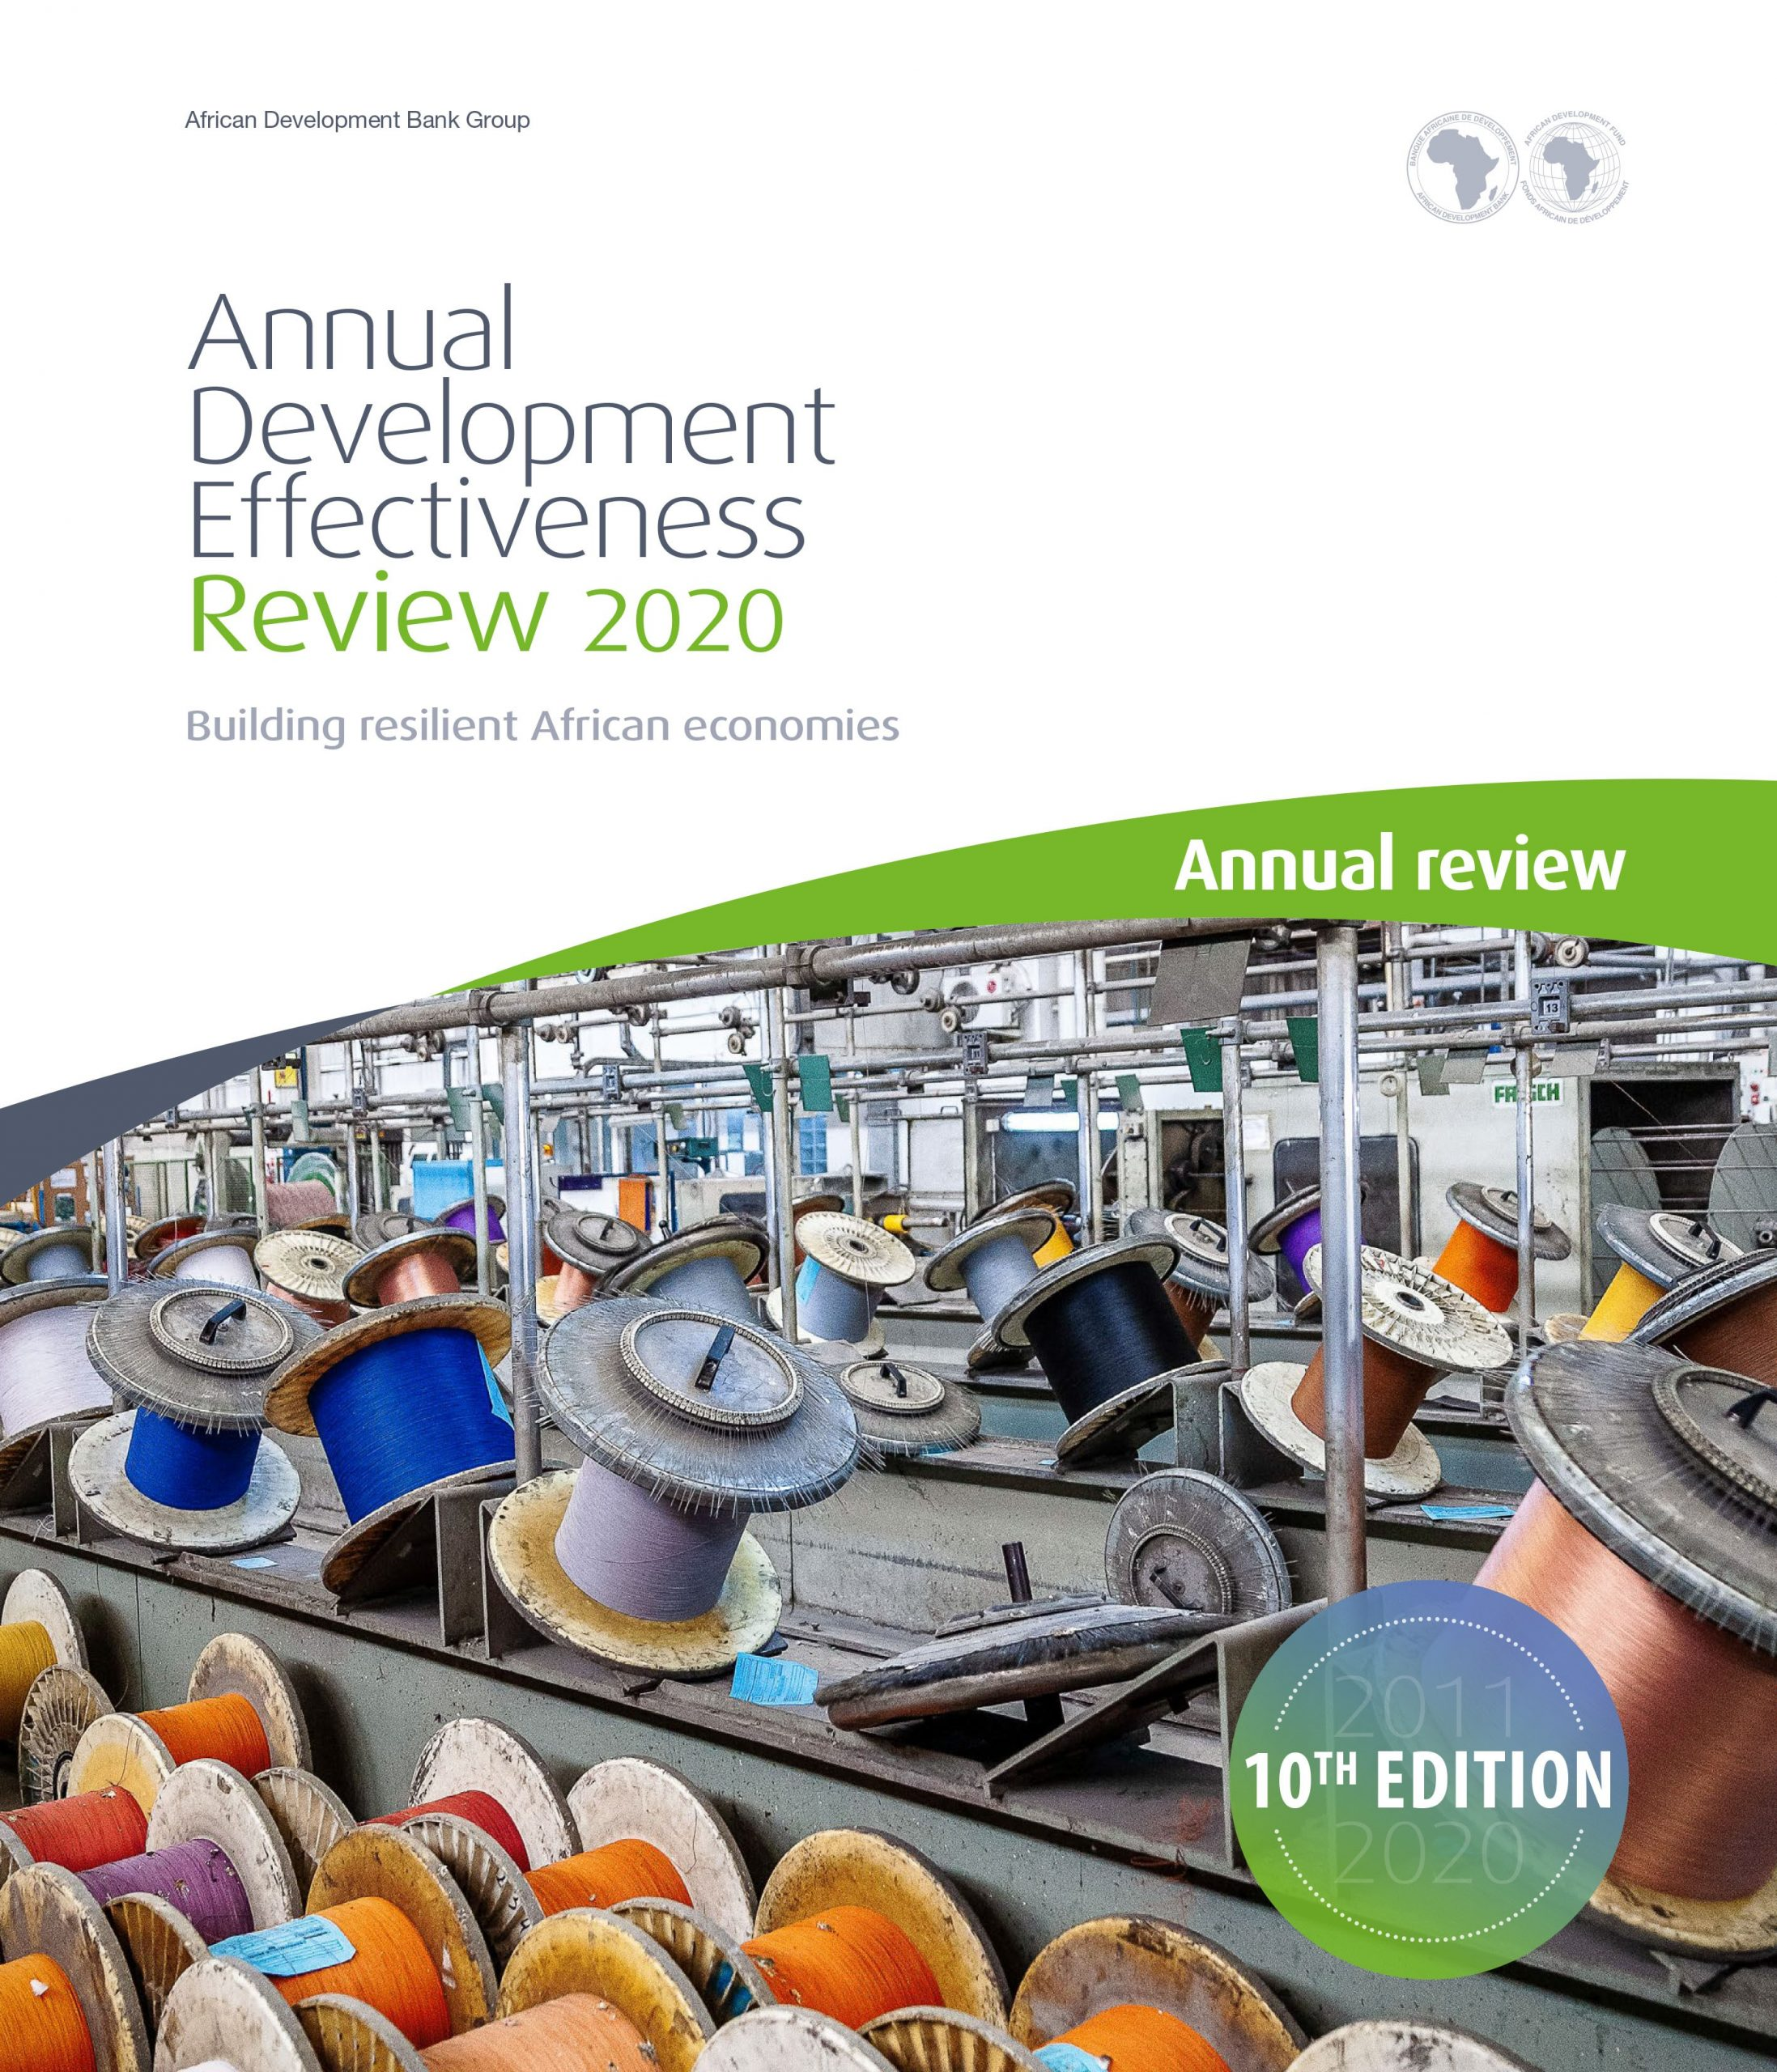 2020 ADER report says AfDB Spurring Development in Africa